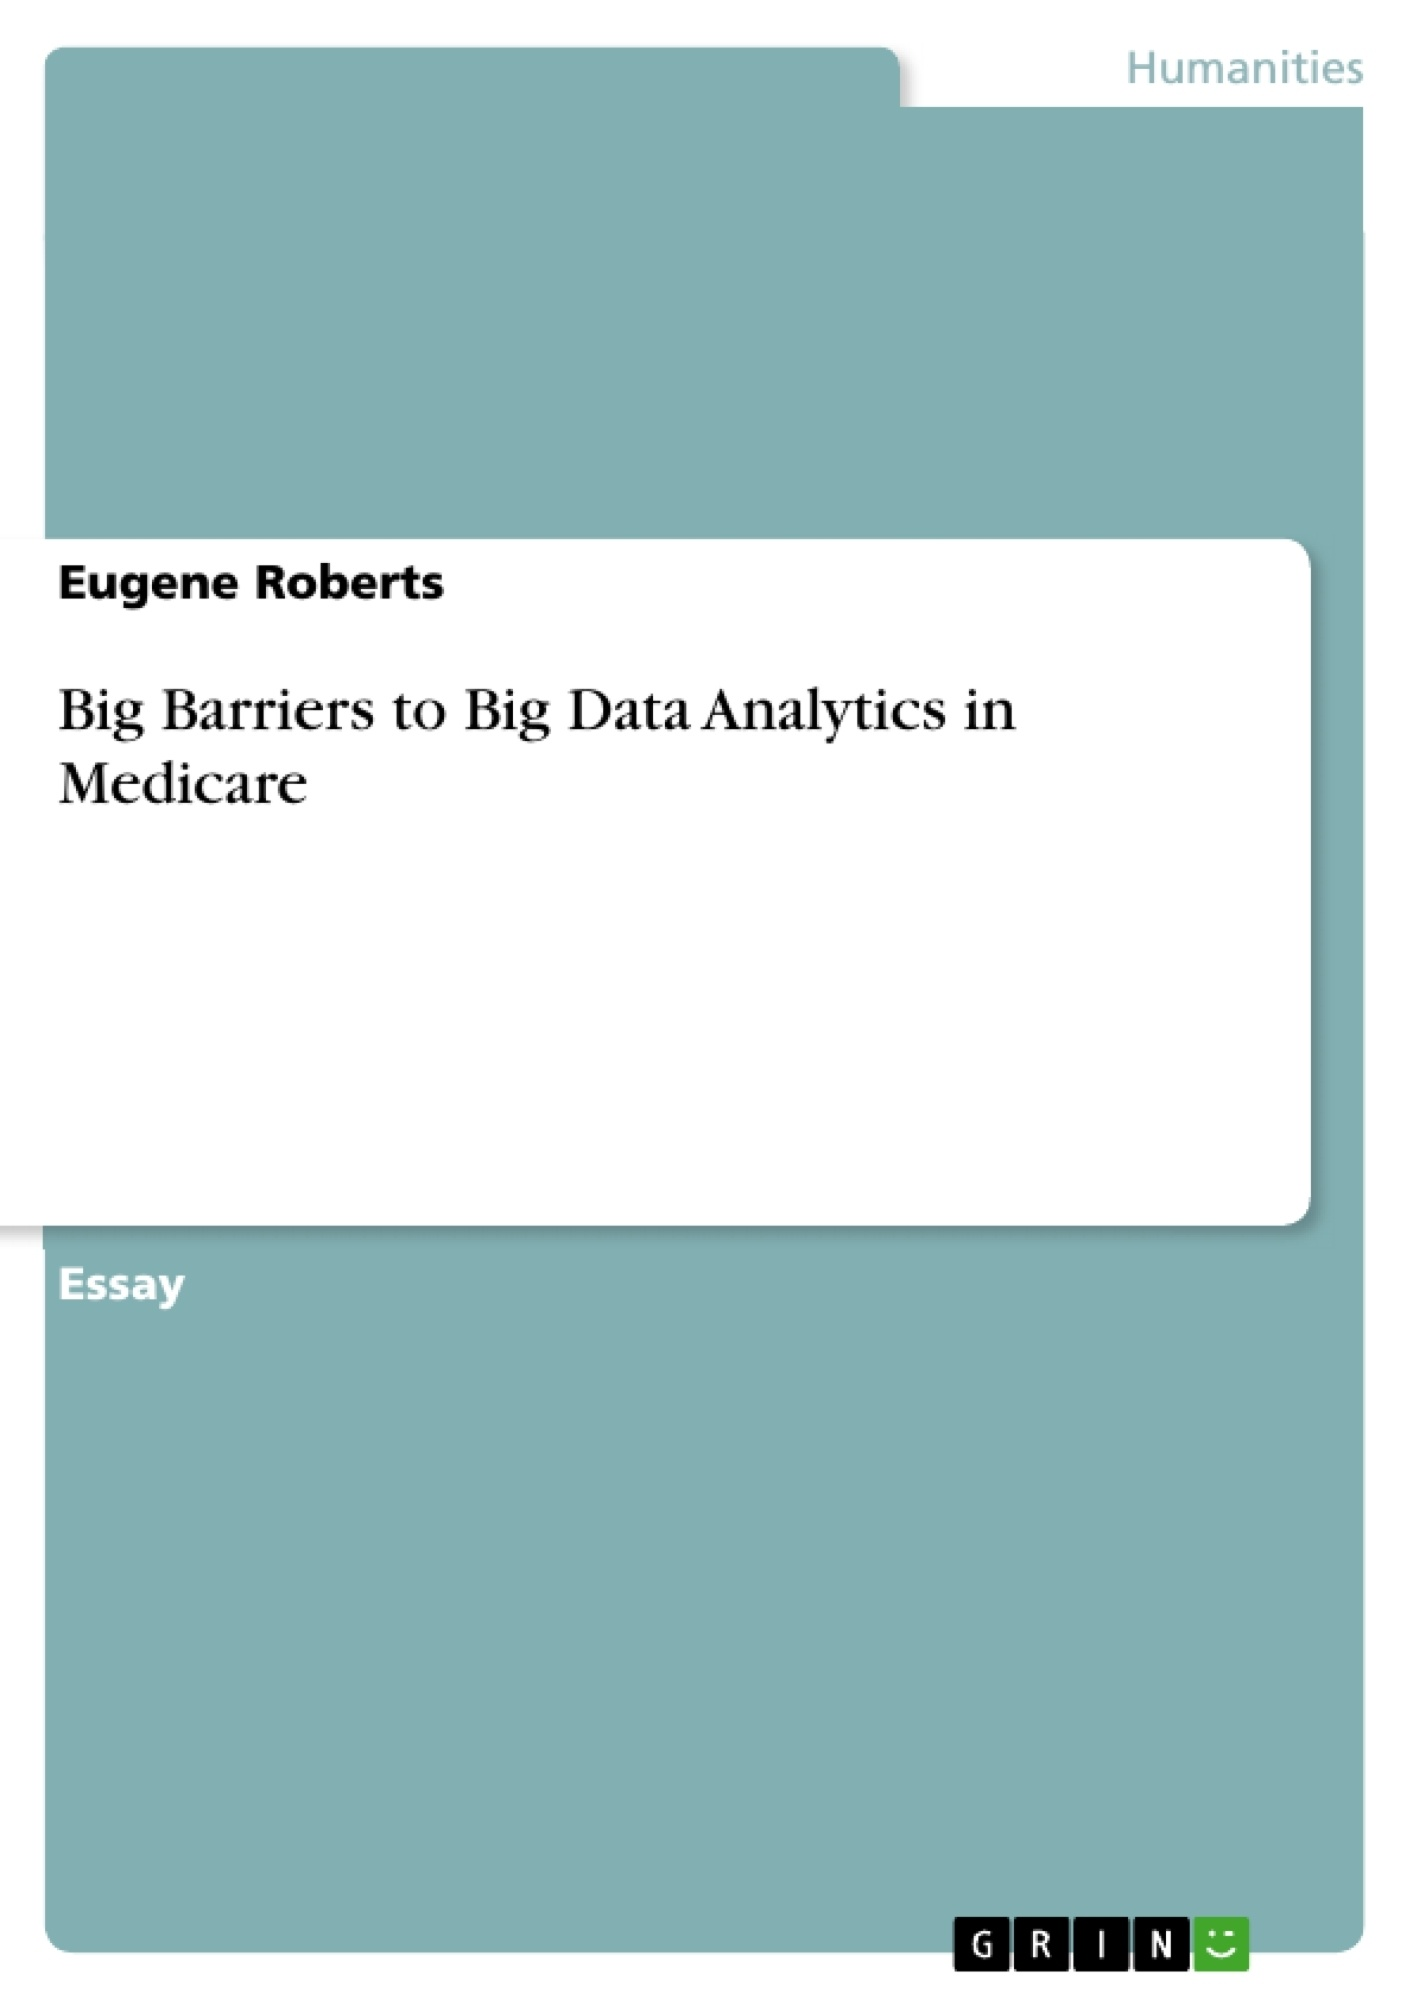 Title: Big Barriers to Big Data Analytics in Medicare